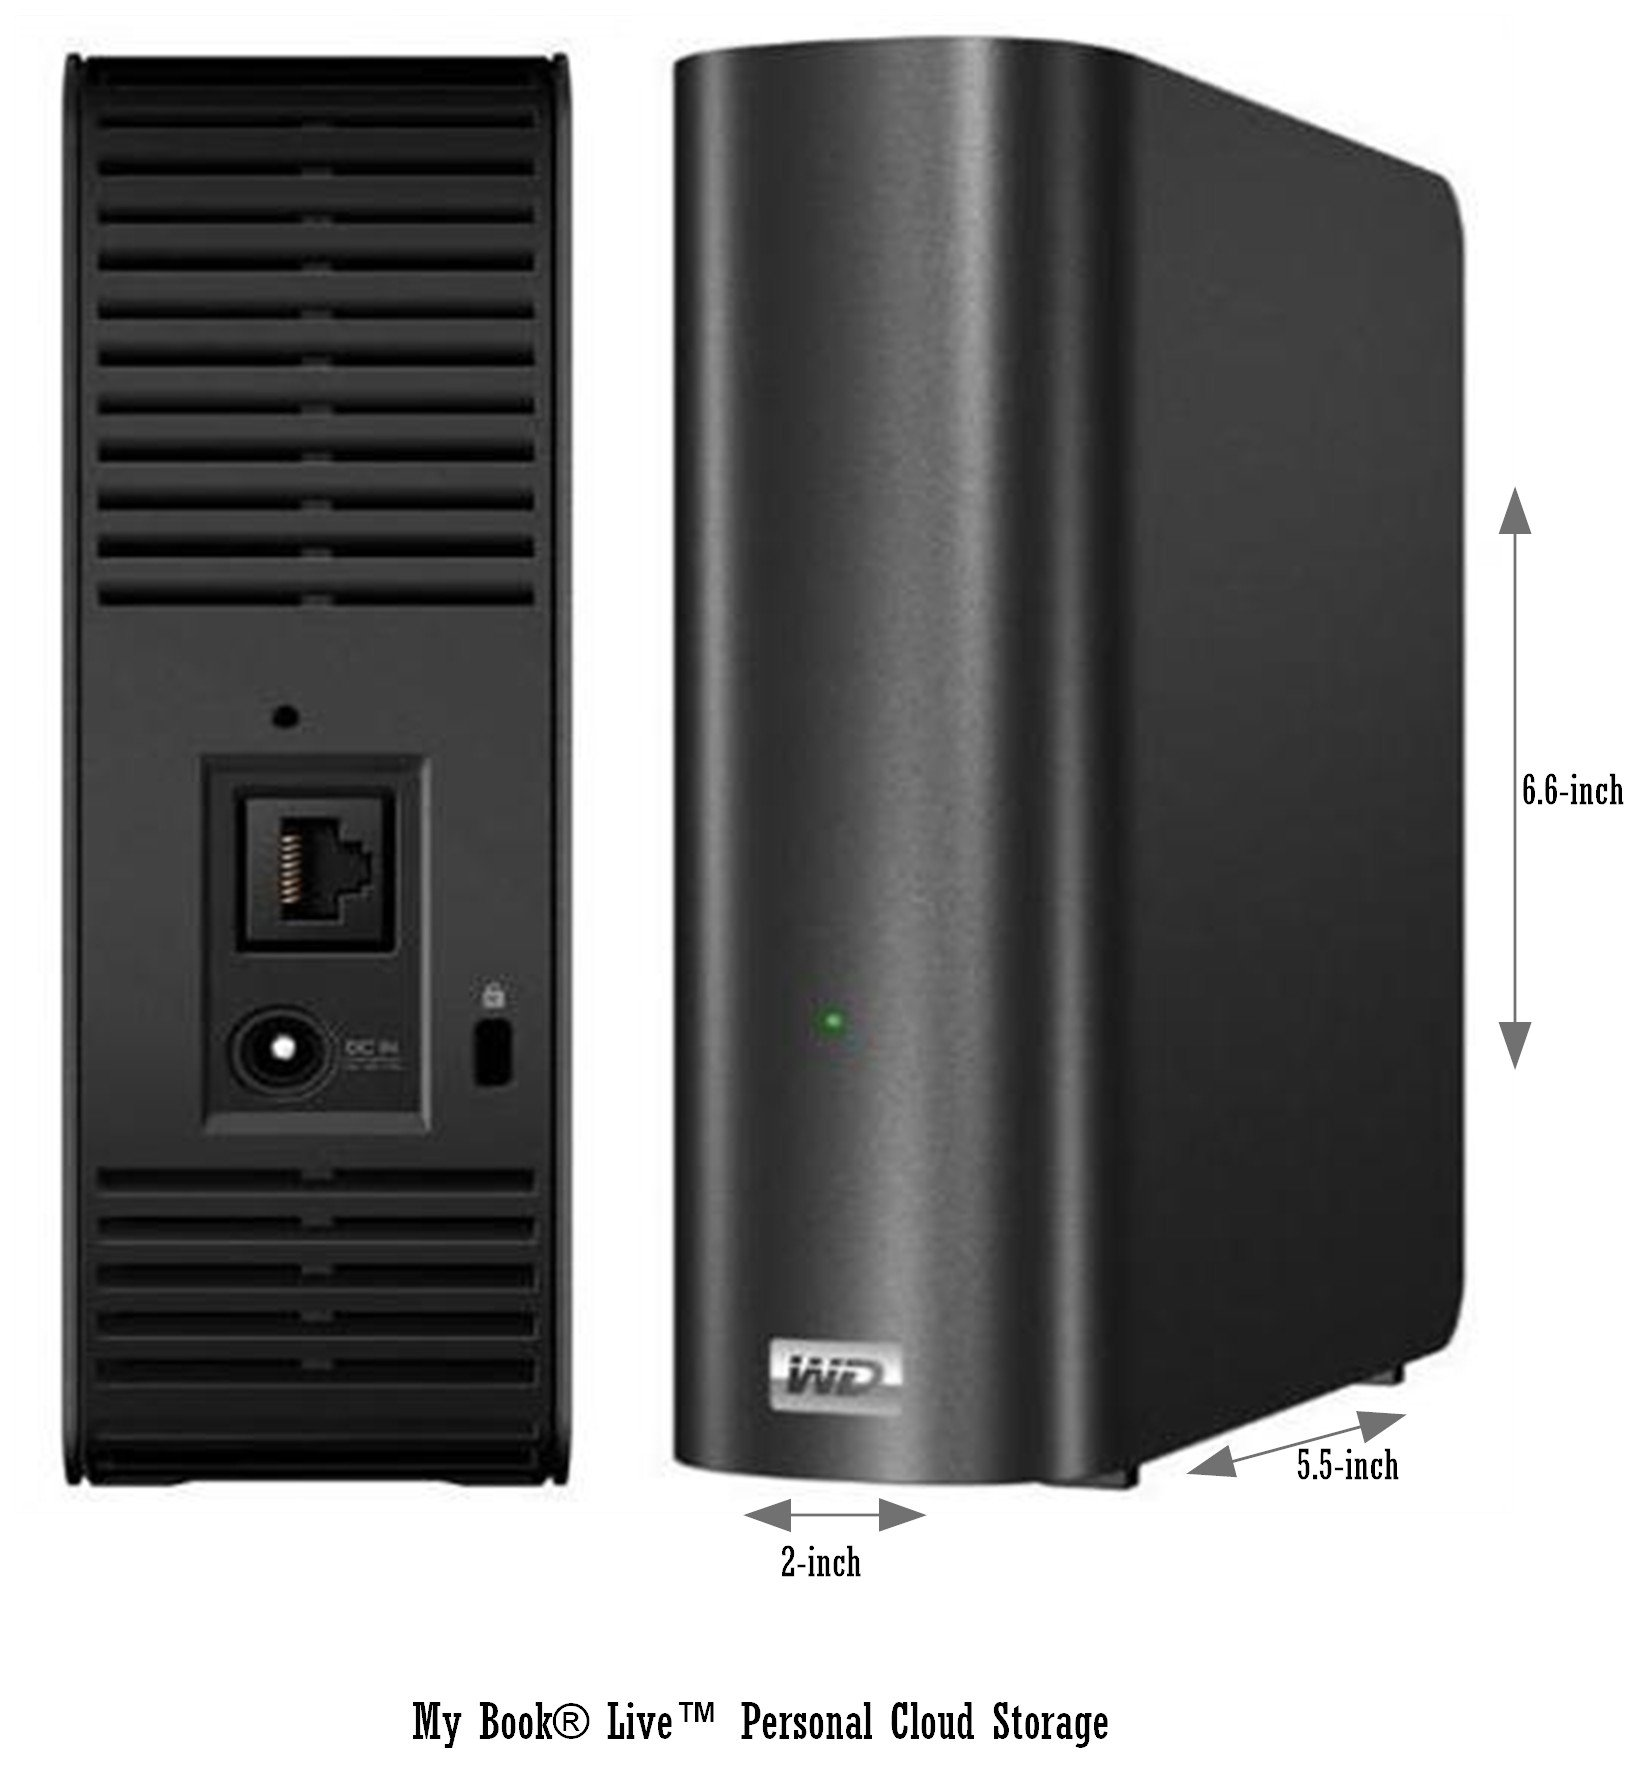 Internet Accessible / Shareable Network Attached Drive, 2TB RJ45 Port Connects to Router - WD My Book Live Personal Cloud Storage - WDBACG0020HCH